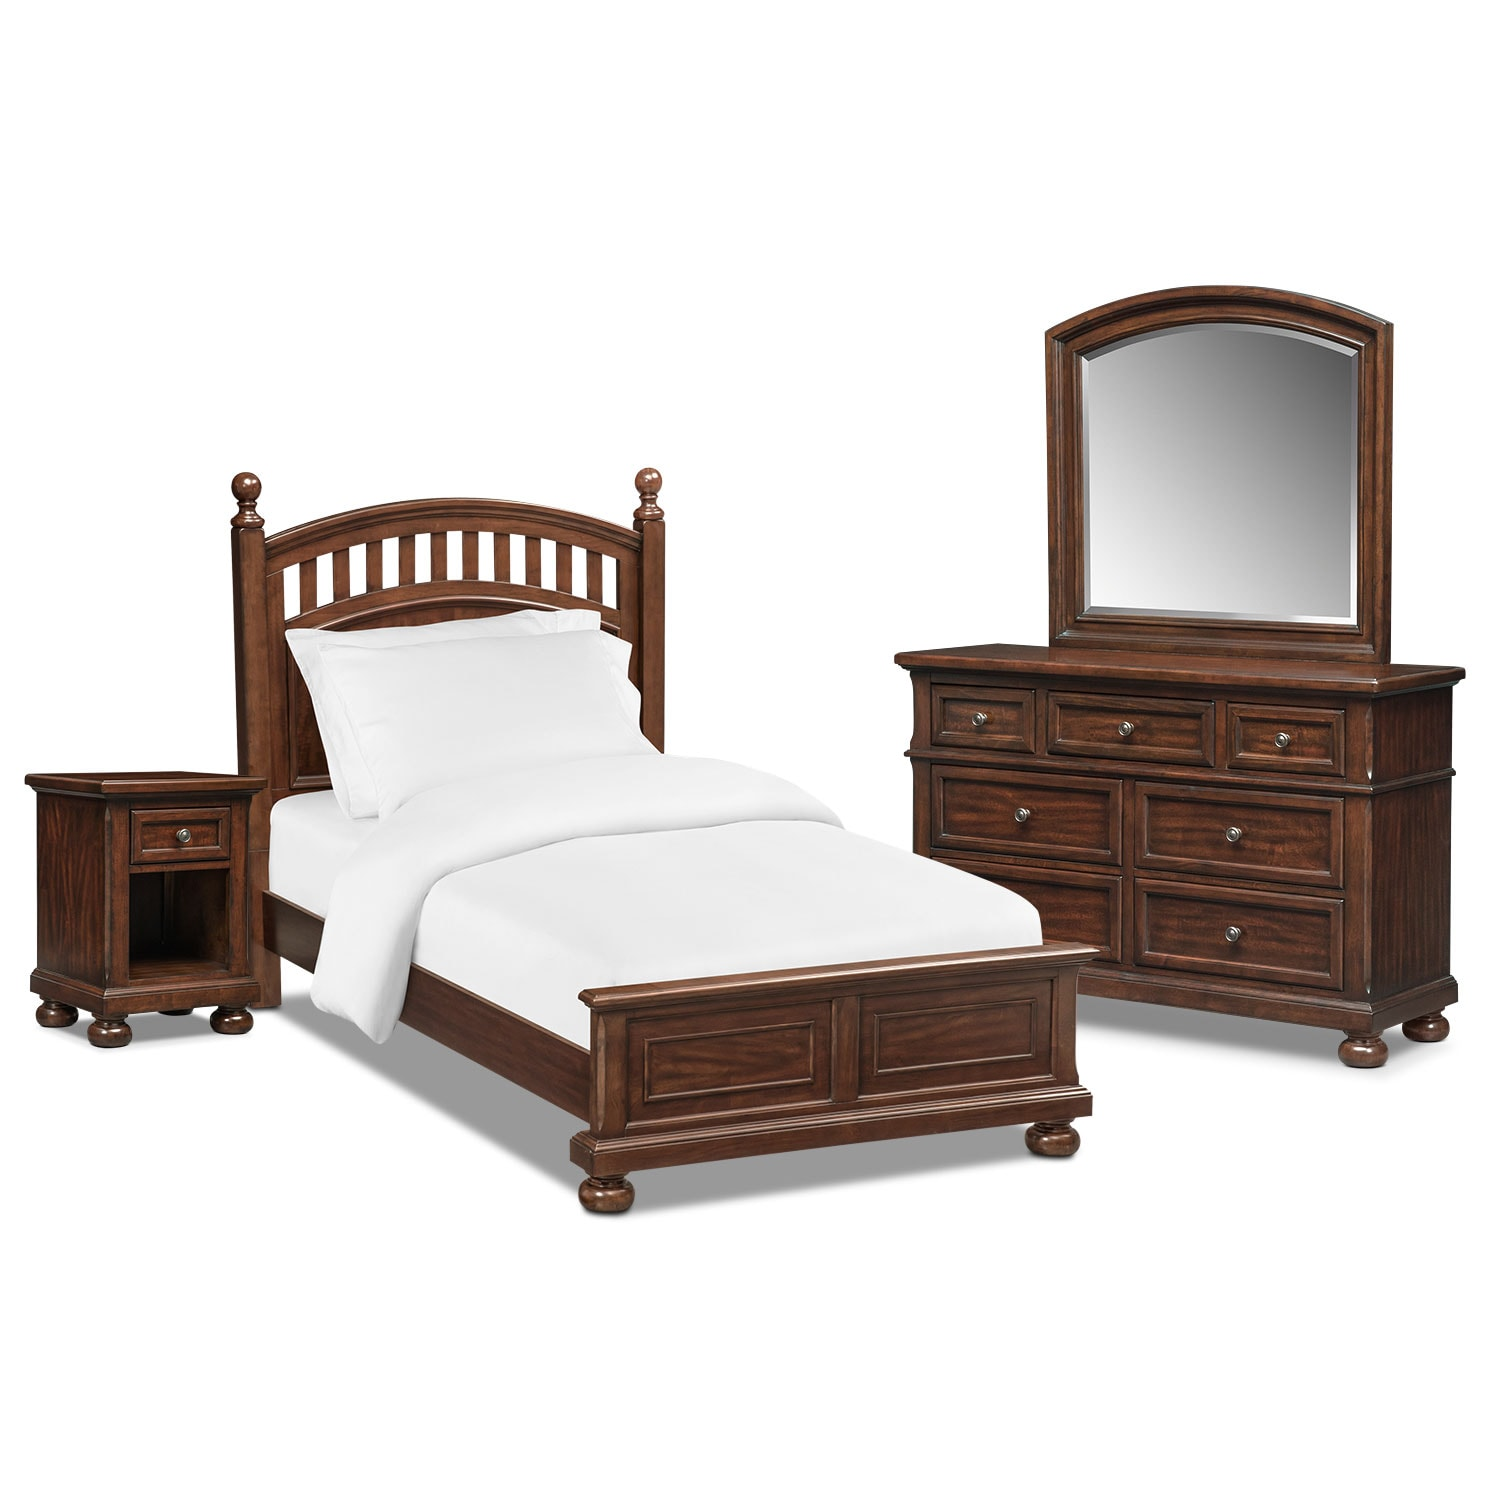 Hanover youth 6 piece twin poster bedroom set cherry for American furniture bedroom furniture